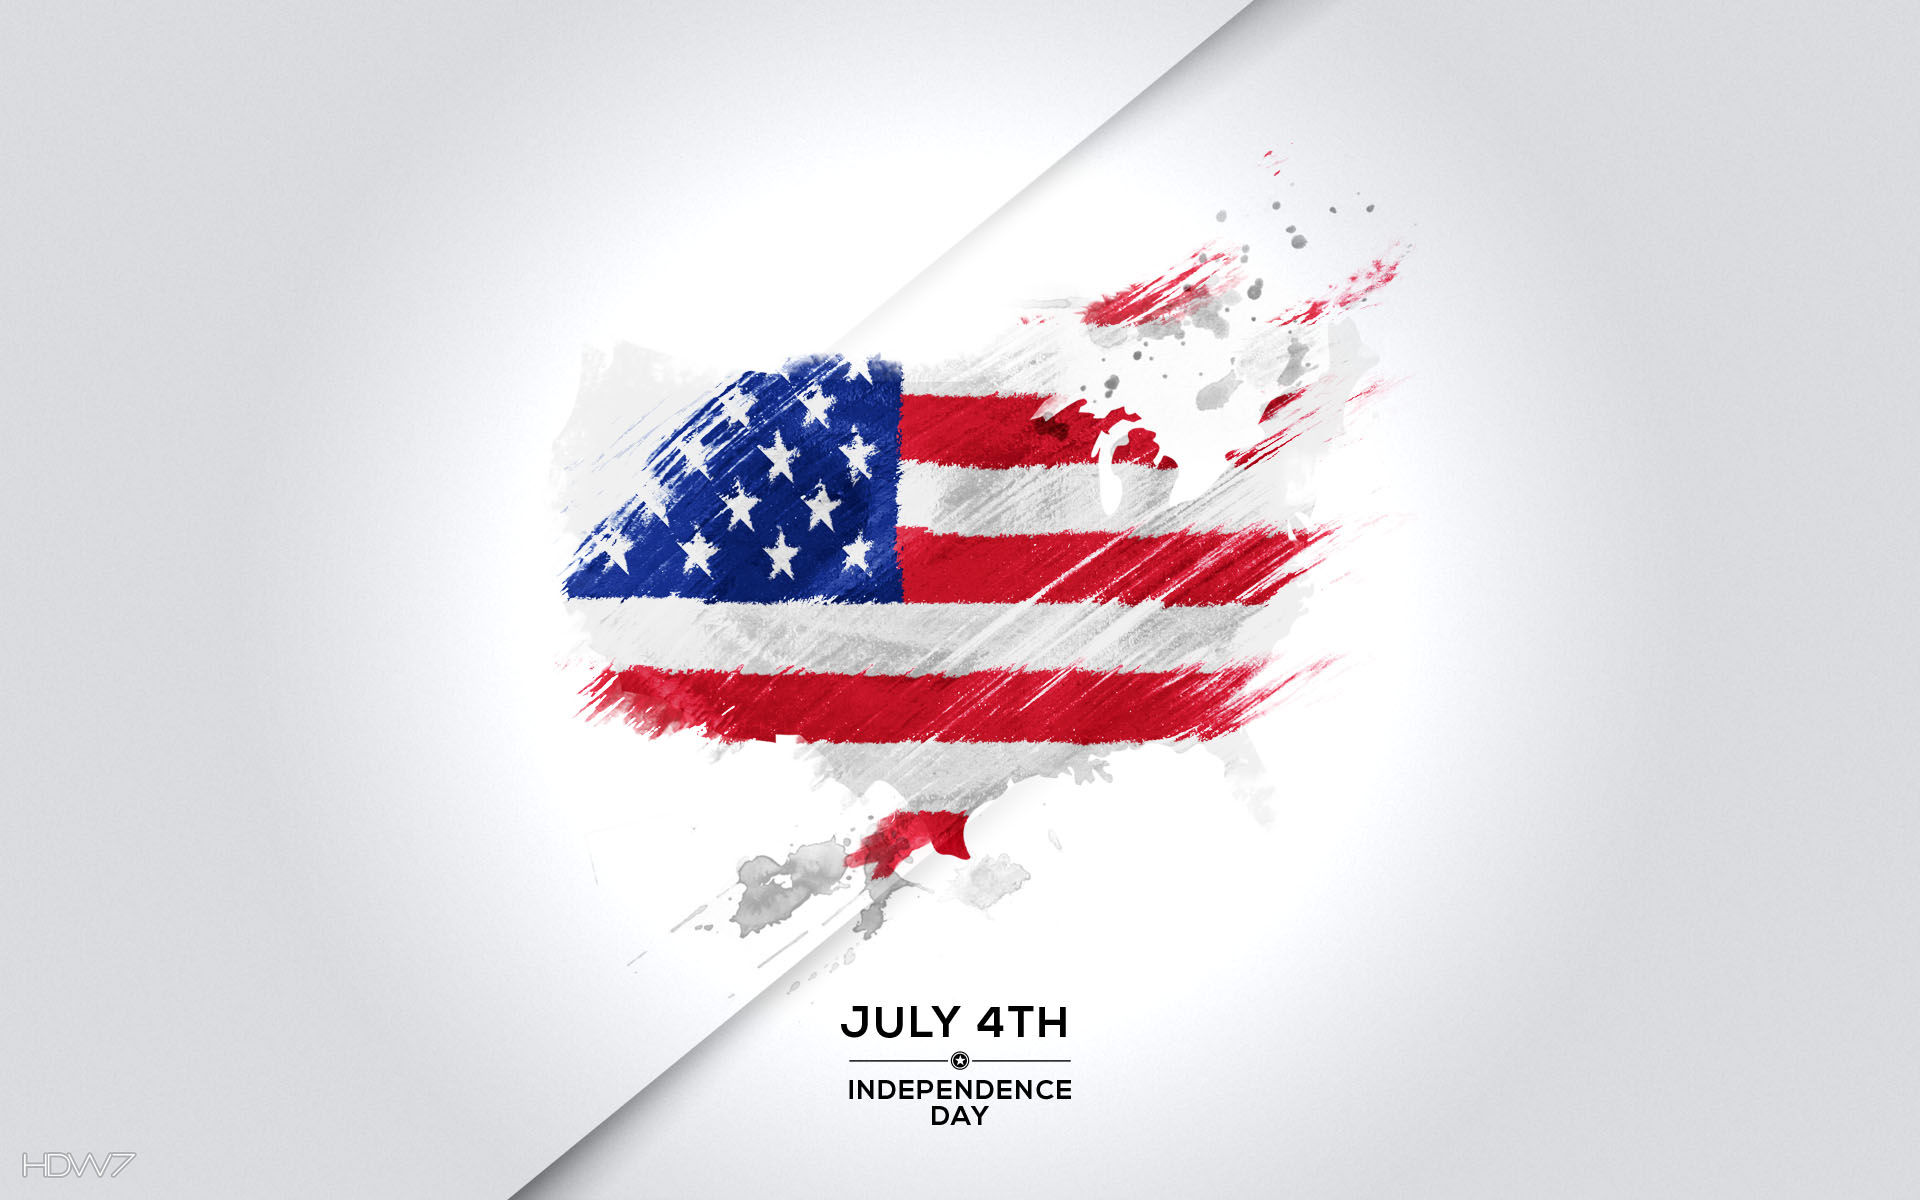 july 4th independence day usa flag map abstract holiday